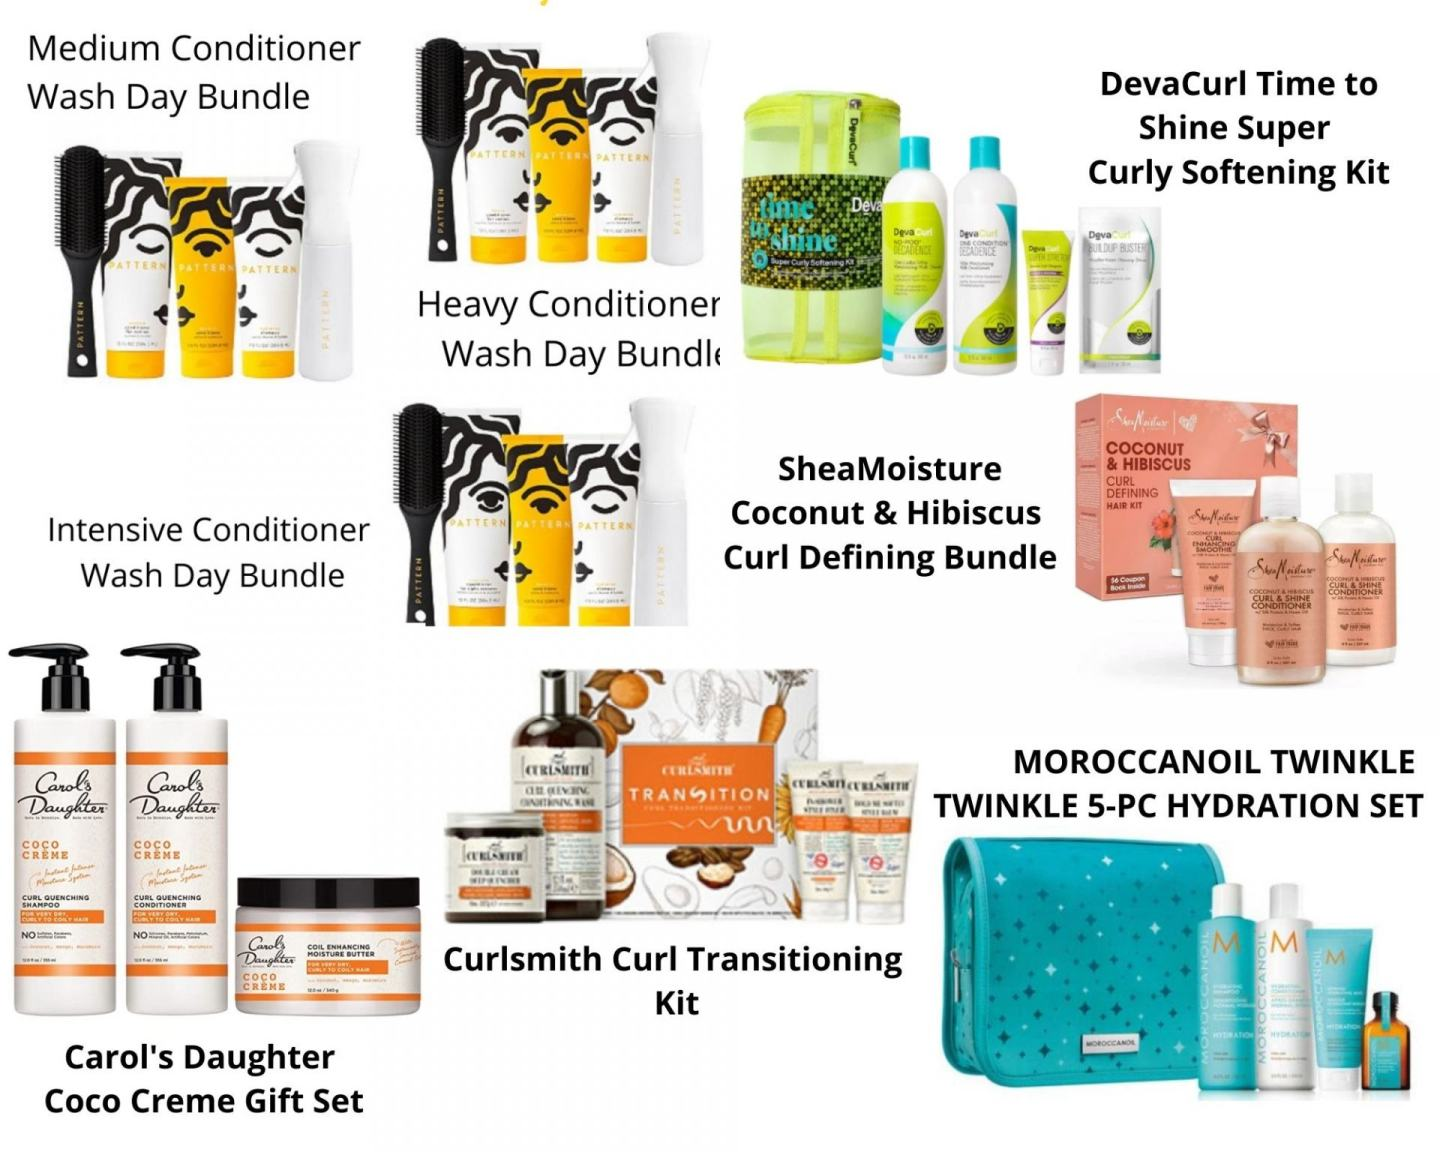 Holiday gift guide 2020 is here! Check out all the best items to get for all the naturals on your holiday Don't forget to get something too!